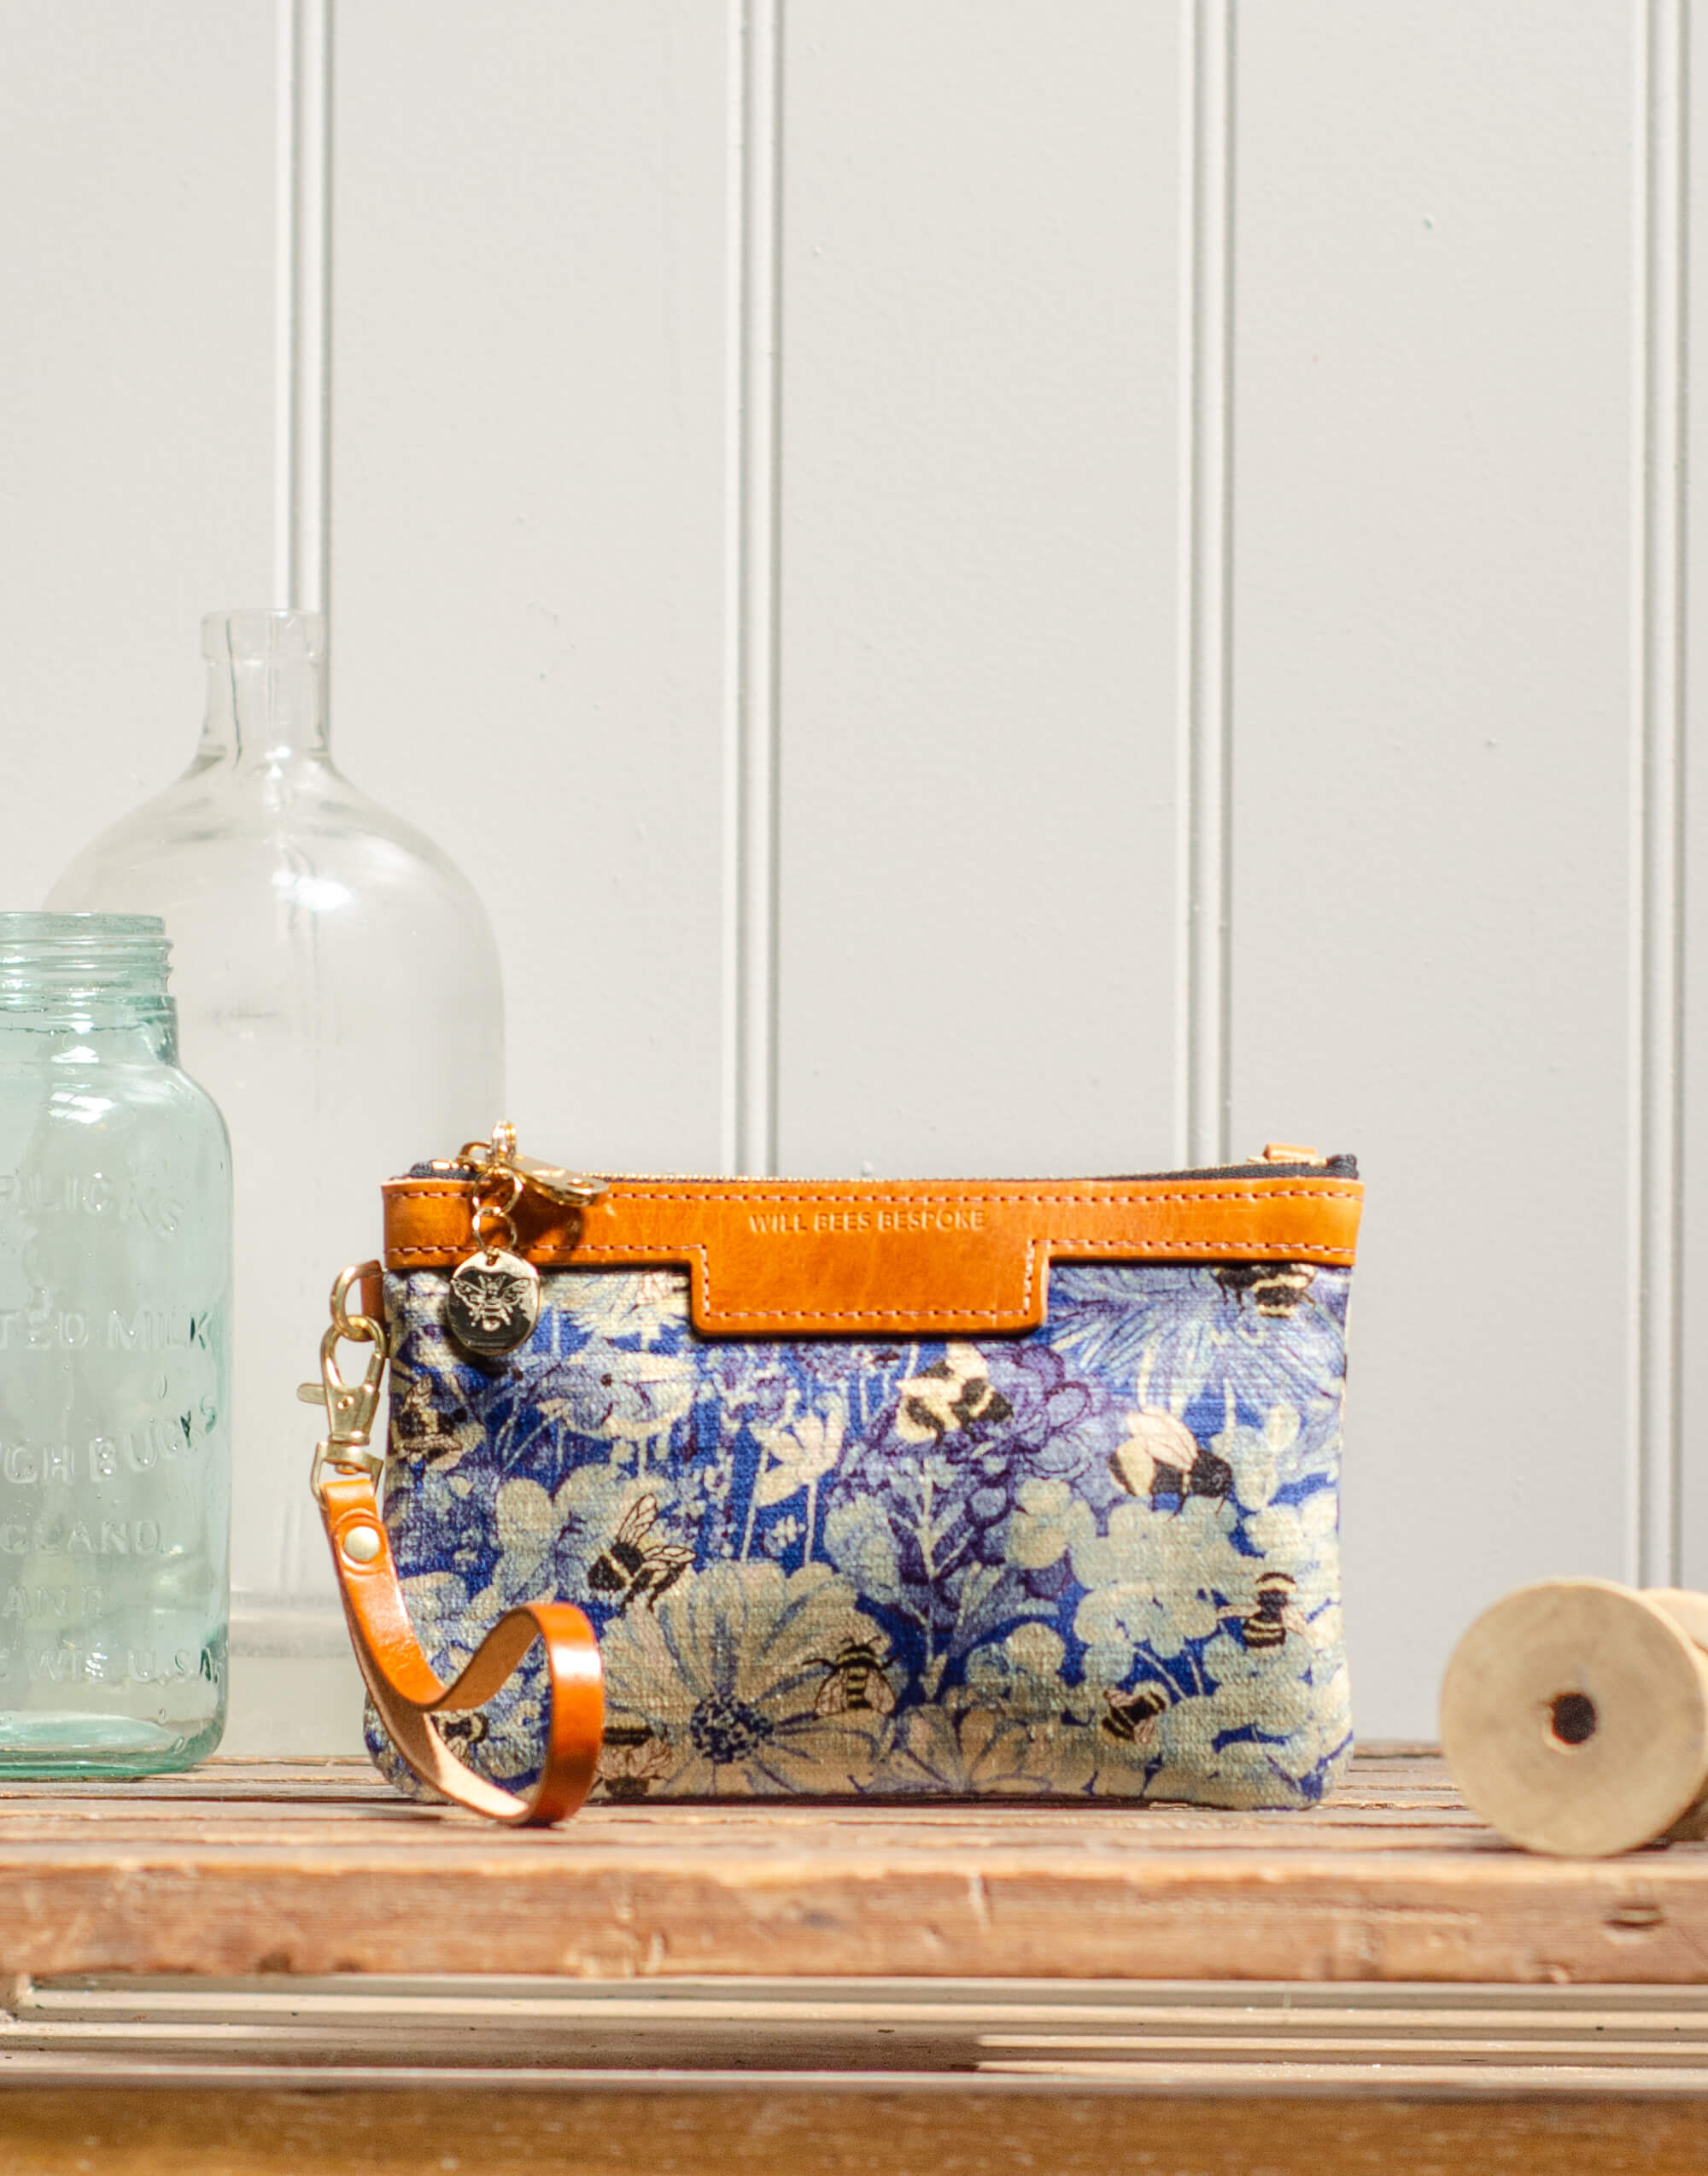 Premium Diana Mini Clutch - Bumblebee Haven in Blue Sea - Will Bees Bespoke